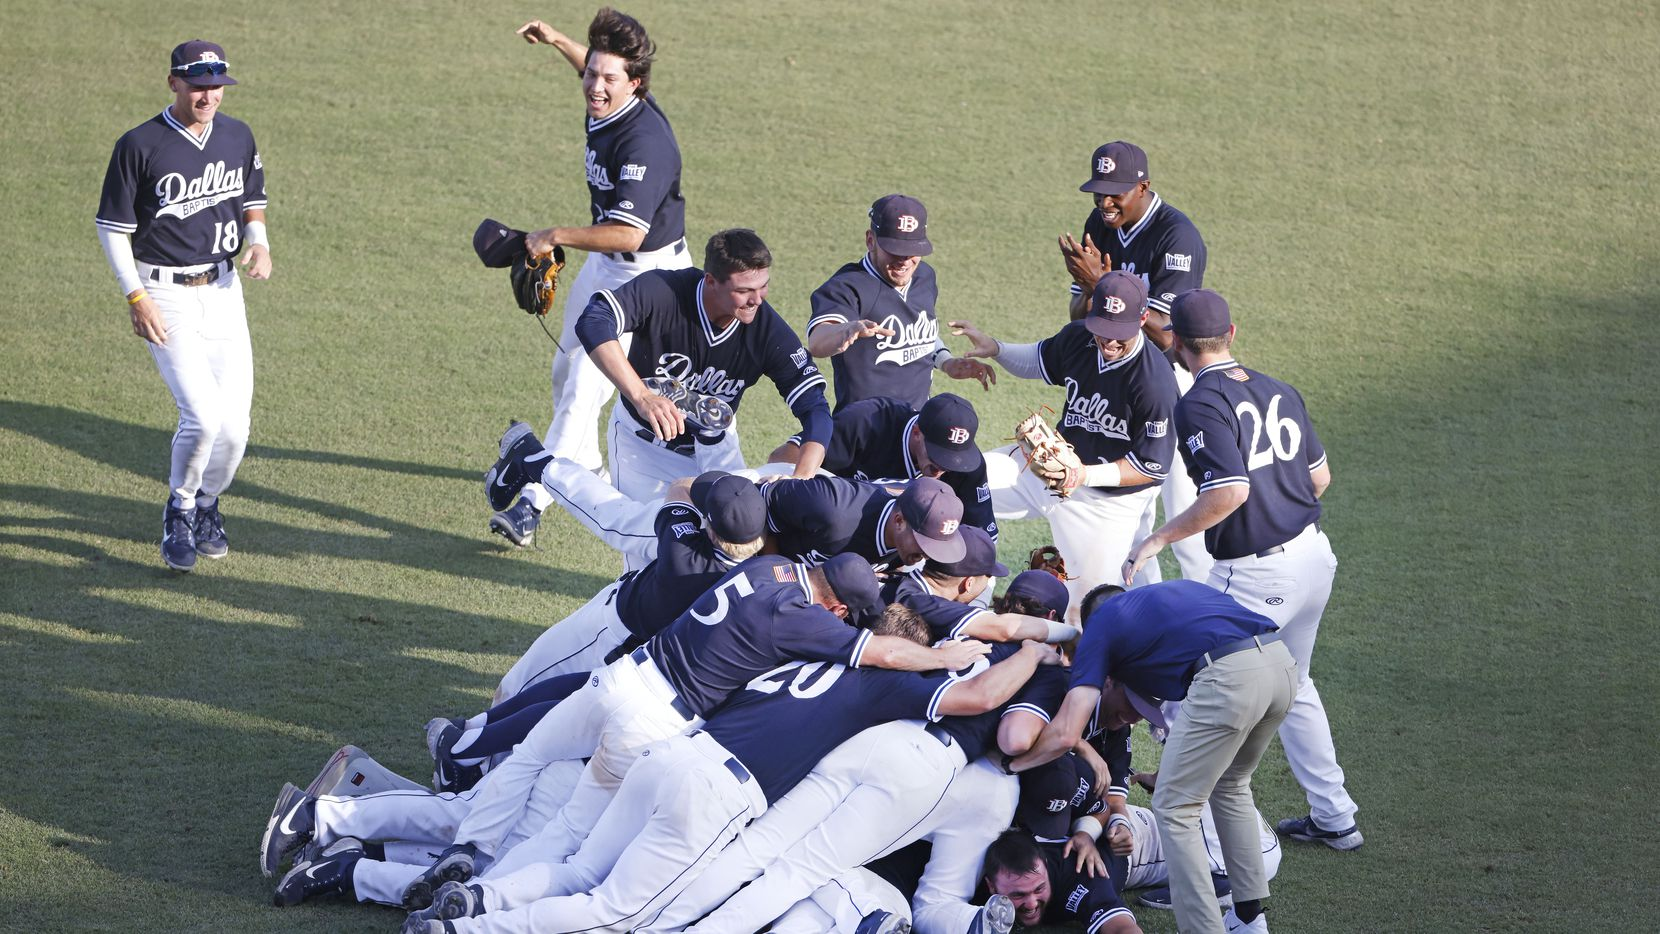 Dallas Baptist celebrates their 8-5 win over Oregon St. following the NCAA Division I Baseball Regional Championship game in Fort Worth, Texas on June 7, 2021.